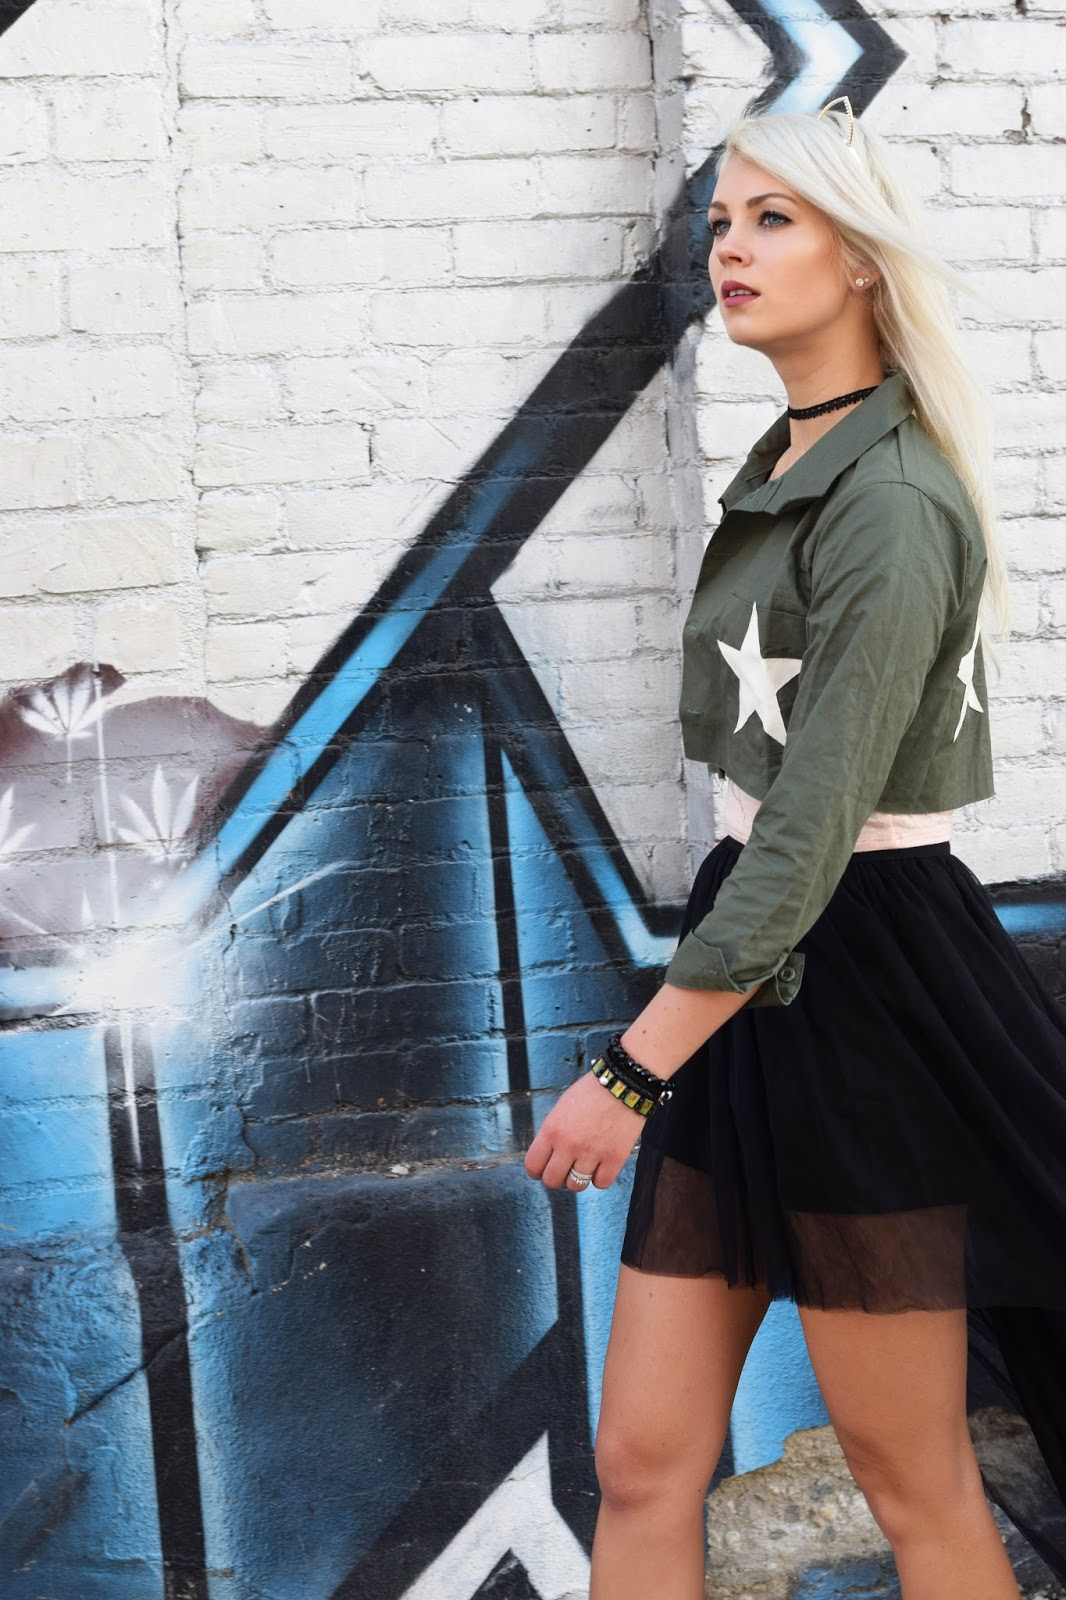 crop top, tulle skirt, german blondy